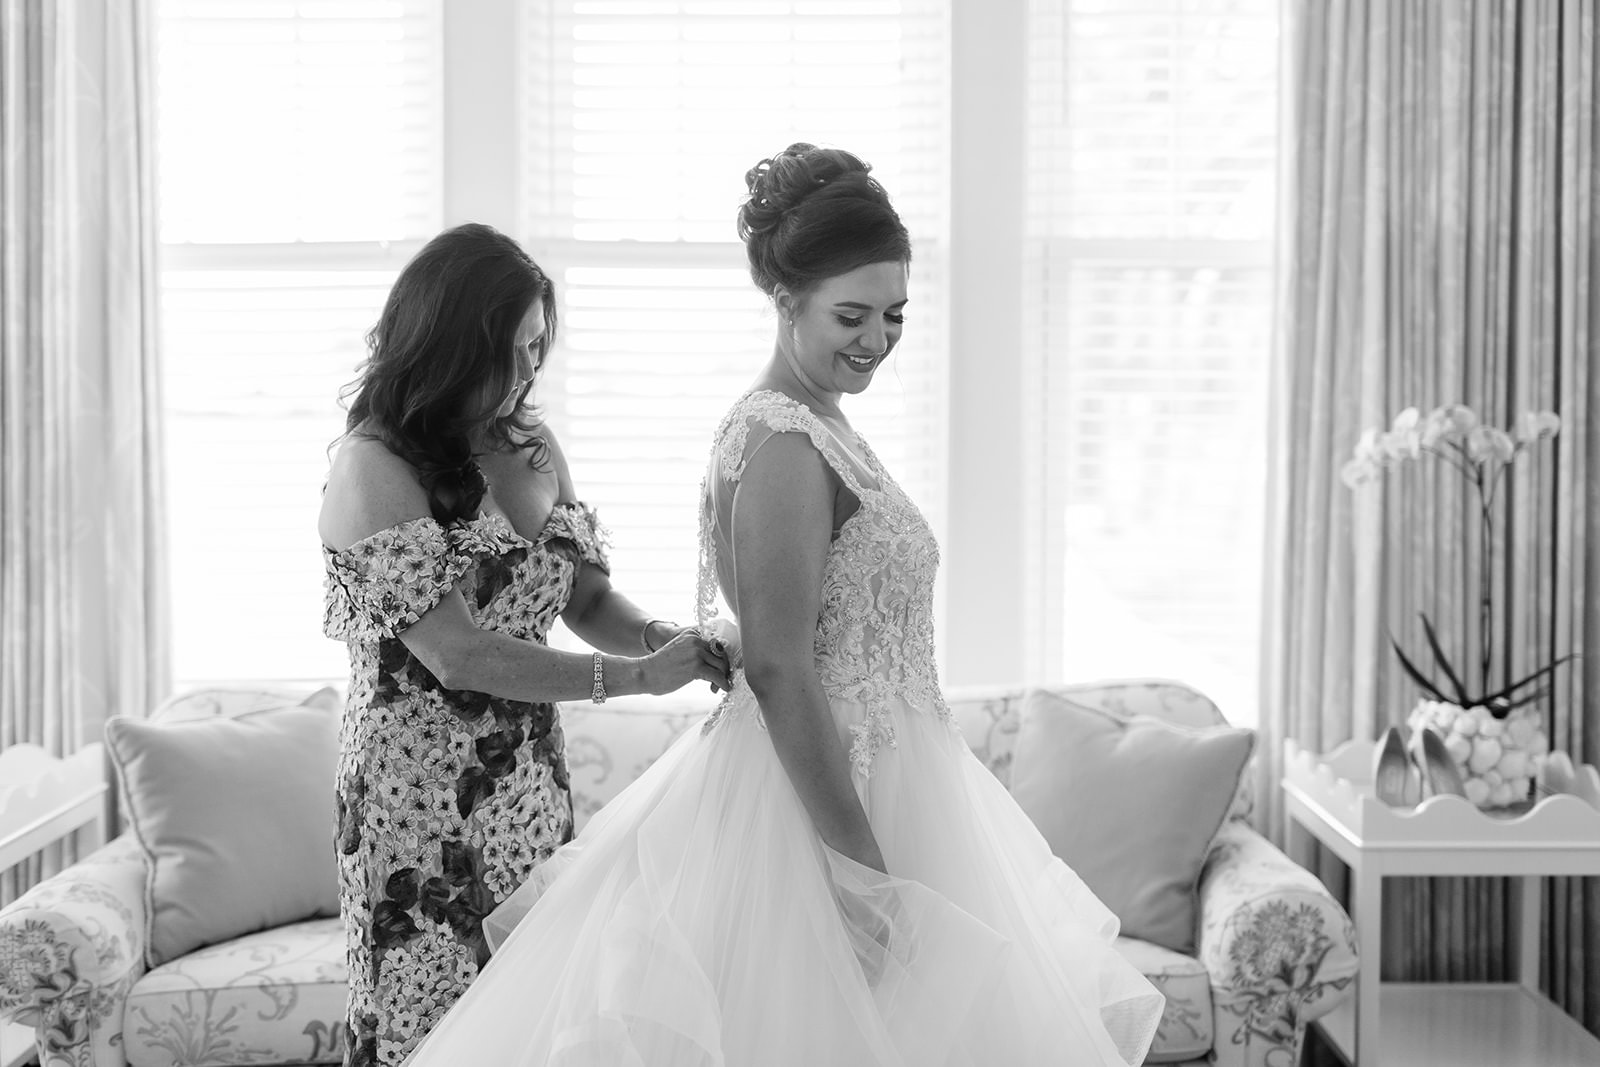 Tampa Bride Getting Ready Photo Putting on Sottero and Midgely Lace and Illusion Bodice and Tulle Skirt Ballgown Wedding Dress